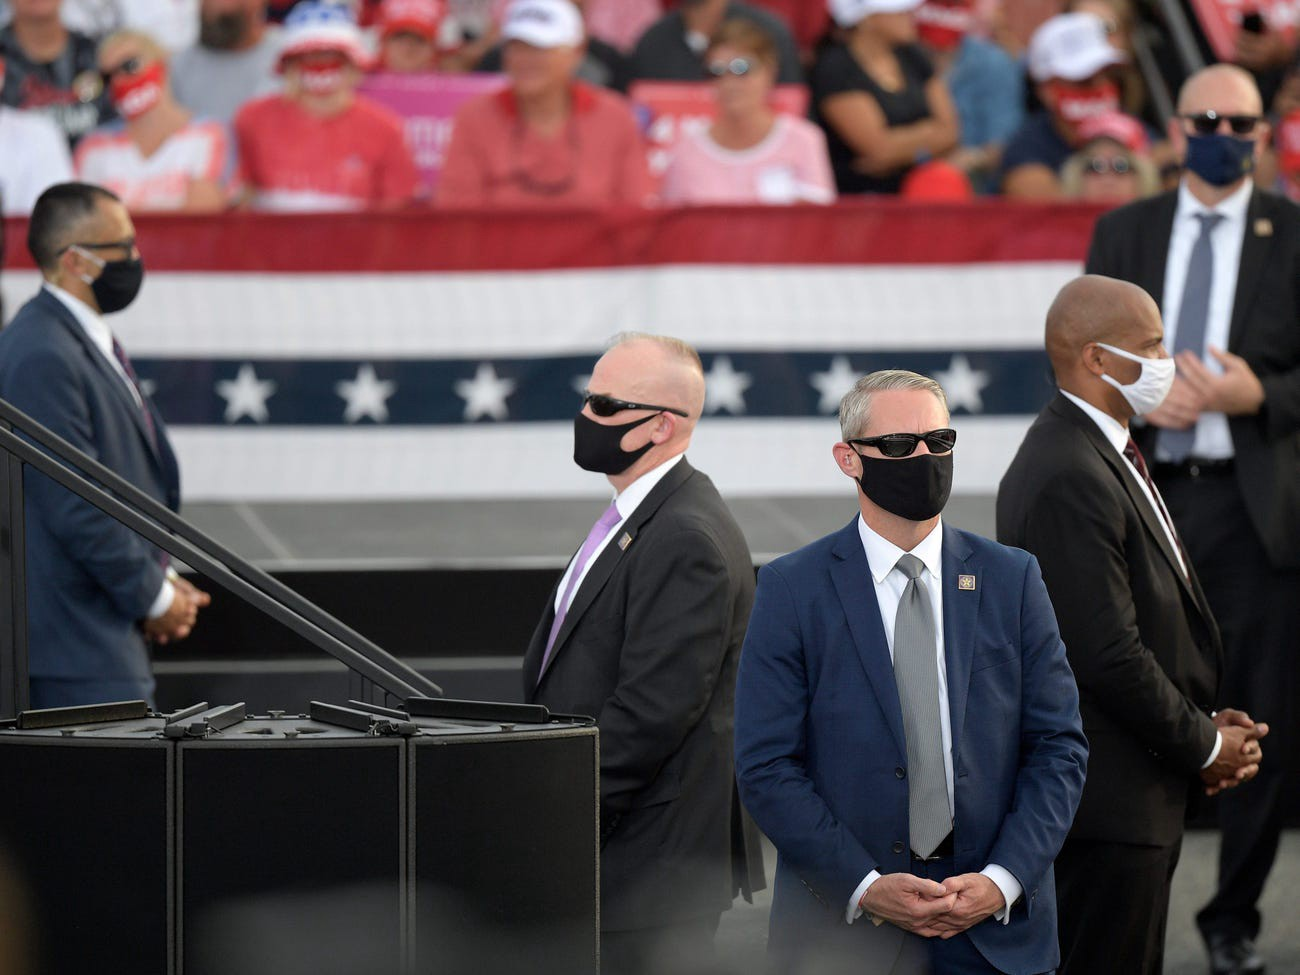 Secret Service agents watch the crowd as President Donald Trump addresses supporters in Florida.